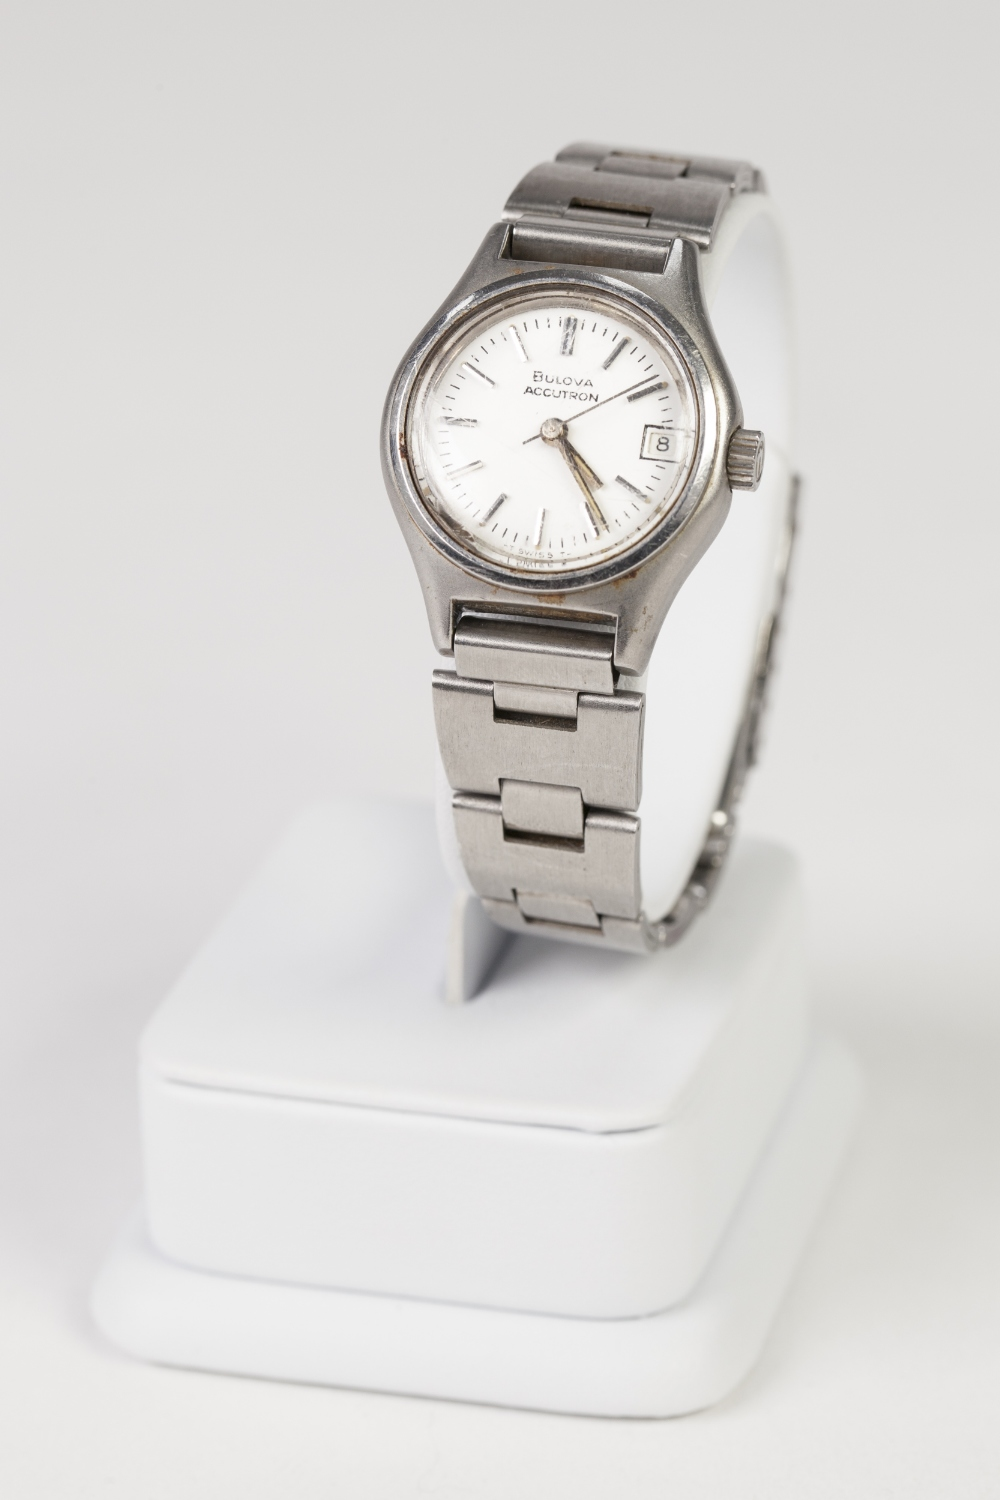 """Lot 24 - BULOVA """"ACCUTRON"""" MID SIZE STAINLESS STEEL CASED WRIST WATCH white enamel dial with date aperture,"""